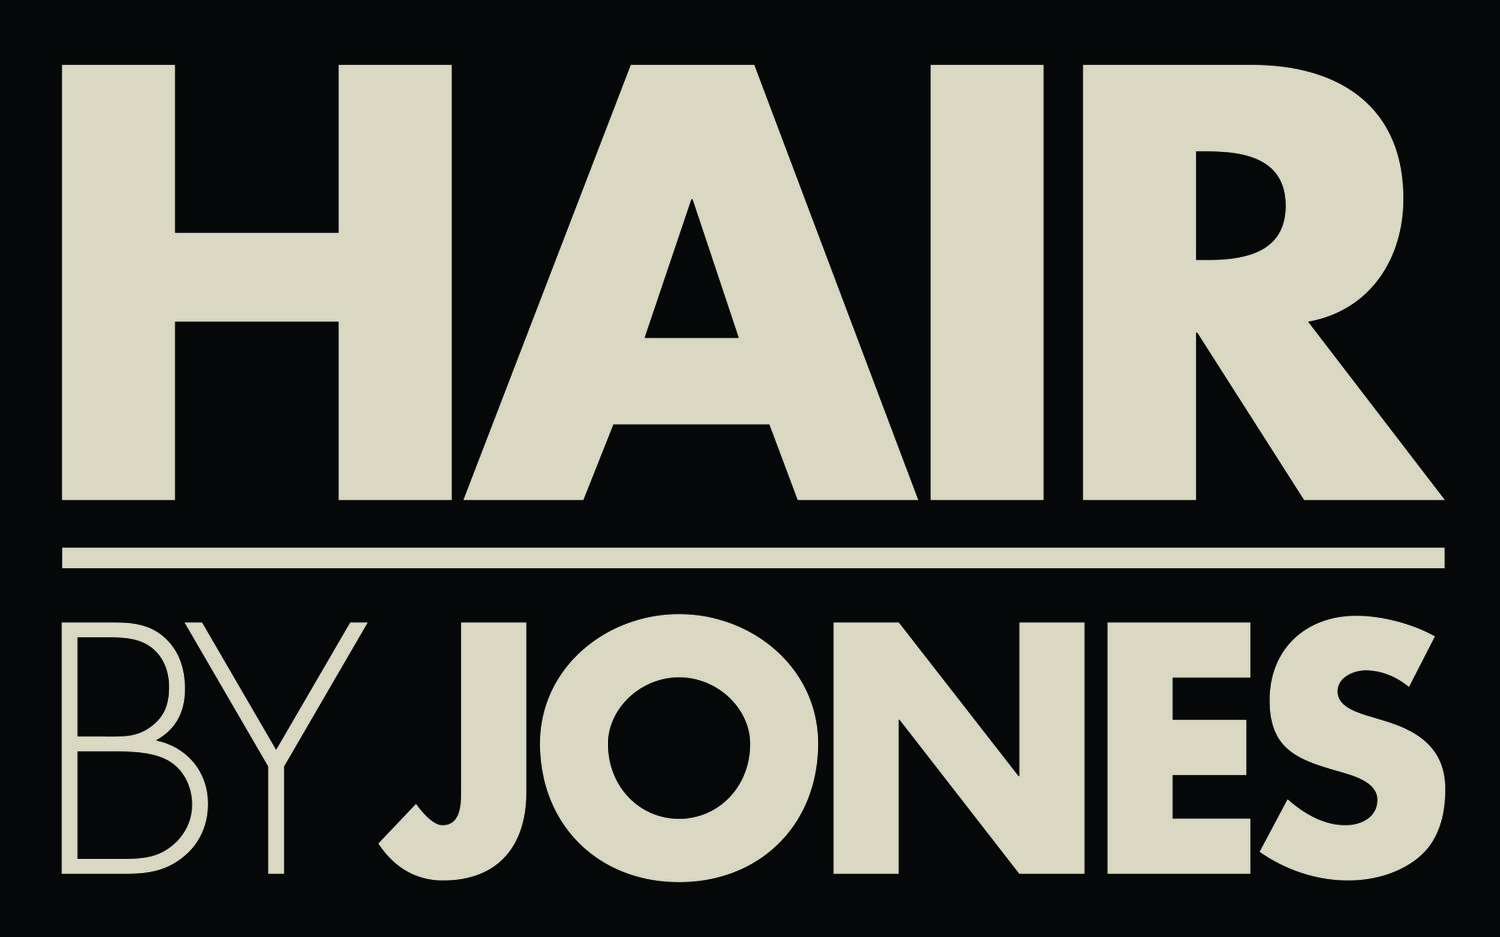 Hair by Jones